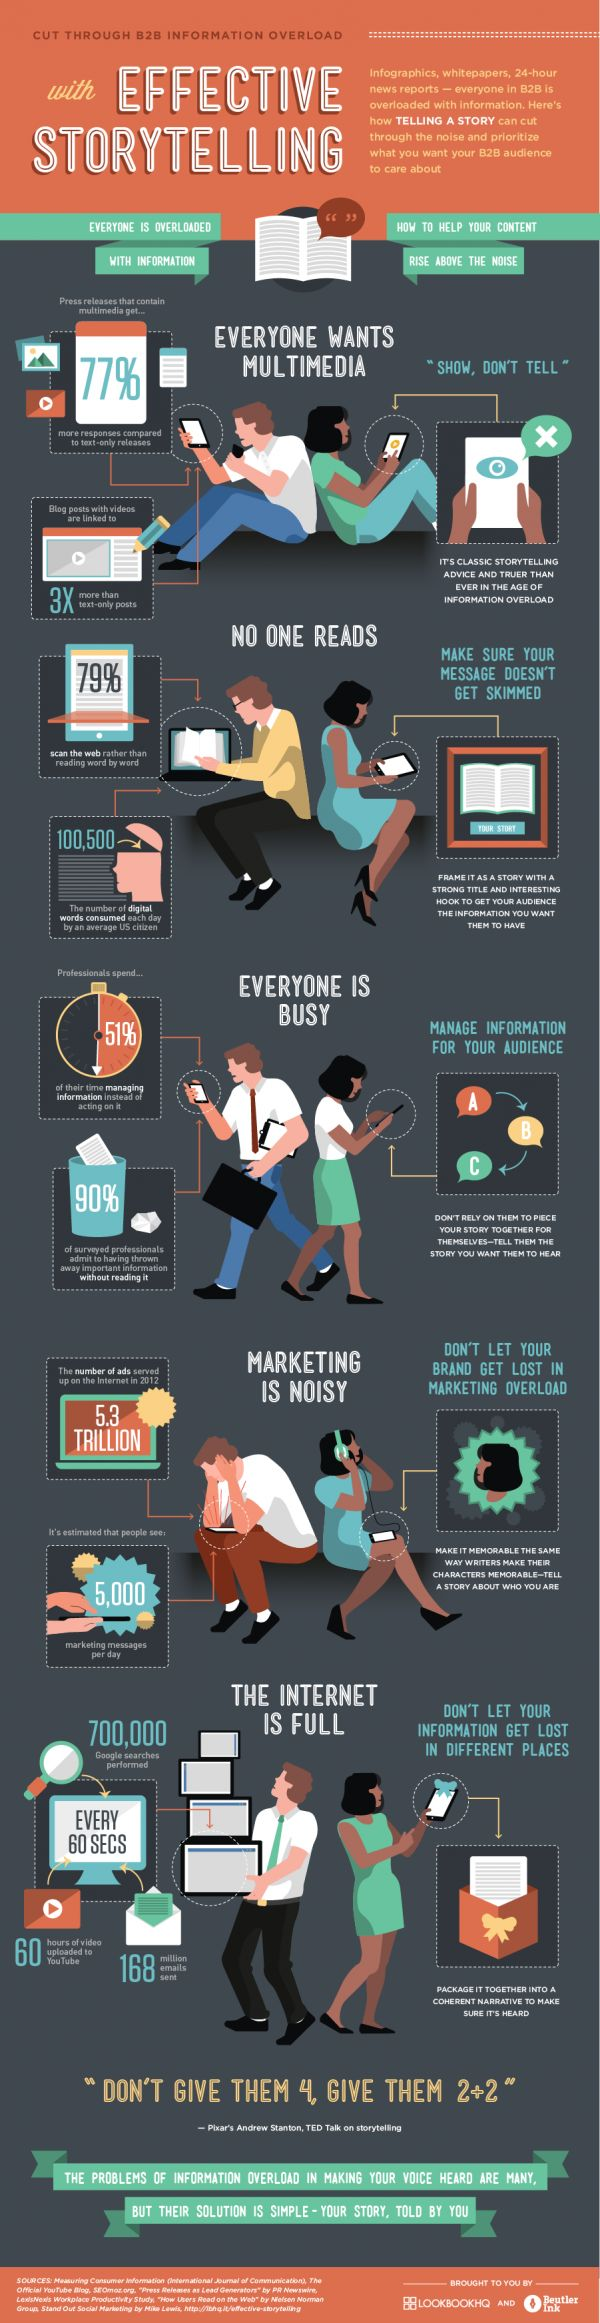 Effective storytelling. Much of this applies to social media. #socialmedia #socialmediamarketing #marketing #storytelling #advertising #facebook #twitter